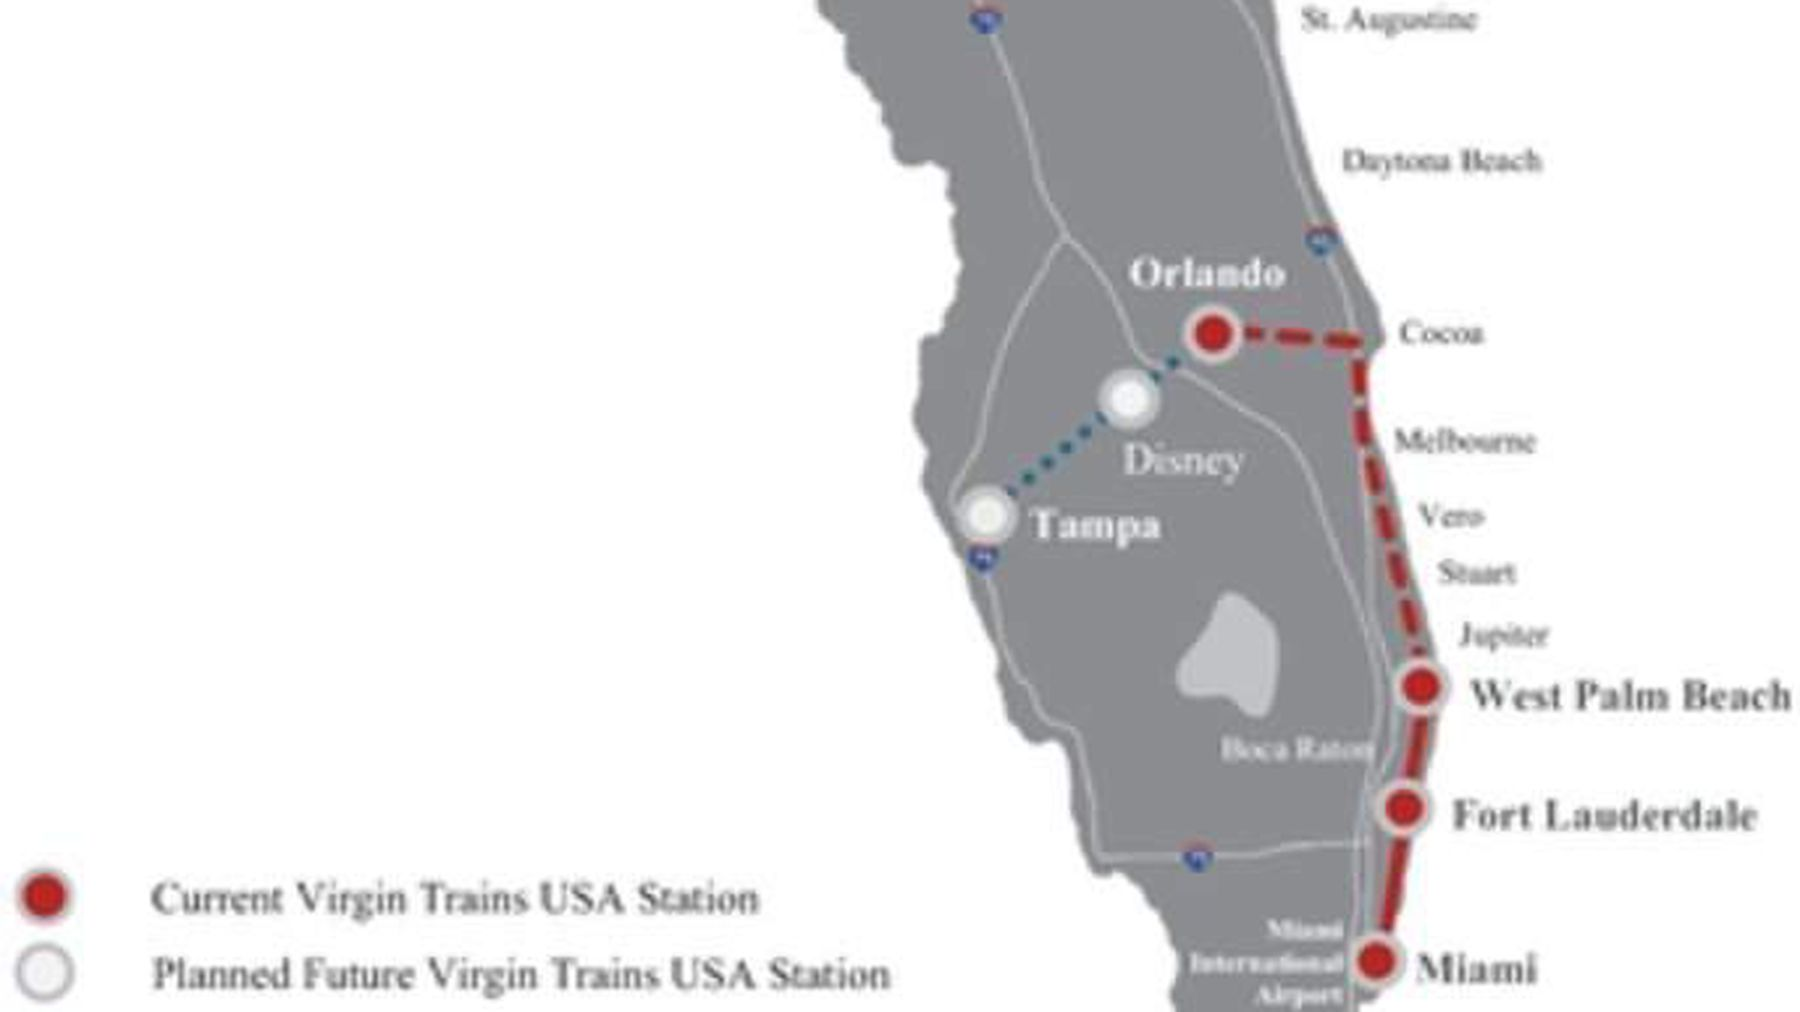 Virgin will be the fastest train ever in the southern U.S. ... on melbourne fl, brevard county florida, at the beach melbourne florida, map of florida, melbourne palm bay florida, melbourne florida tourism, south beach vero florida, melbourne international airport florida, paradise beach melbourne florida, melbourne city, east coast beaches in florida, melbourne florida florida, beaches near melbourne florida, melbourne florida stand up paddle board, bal harbour mall florida,